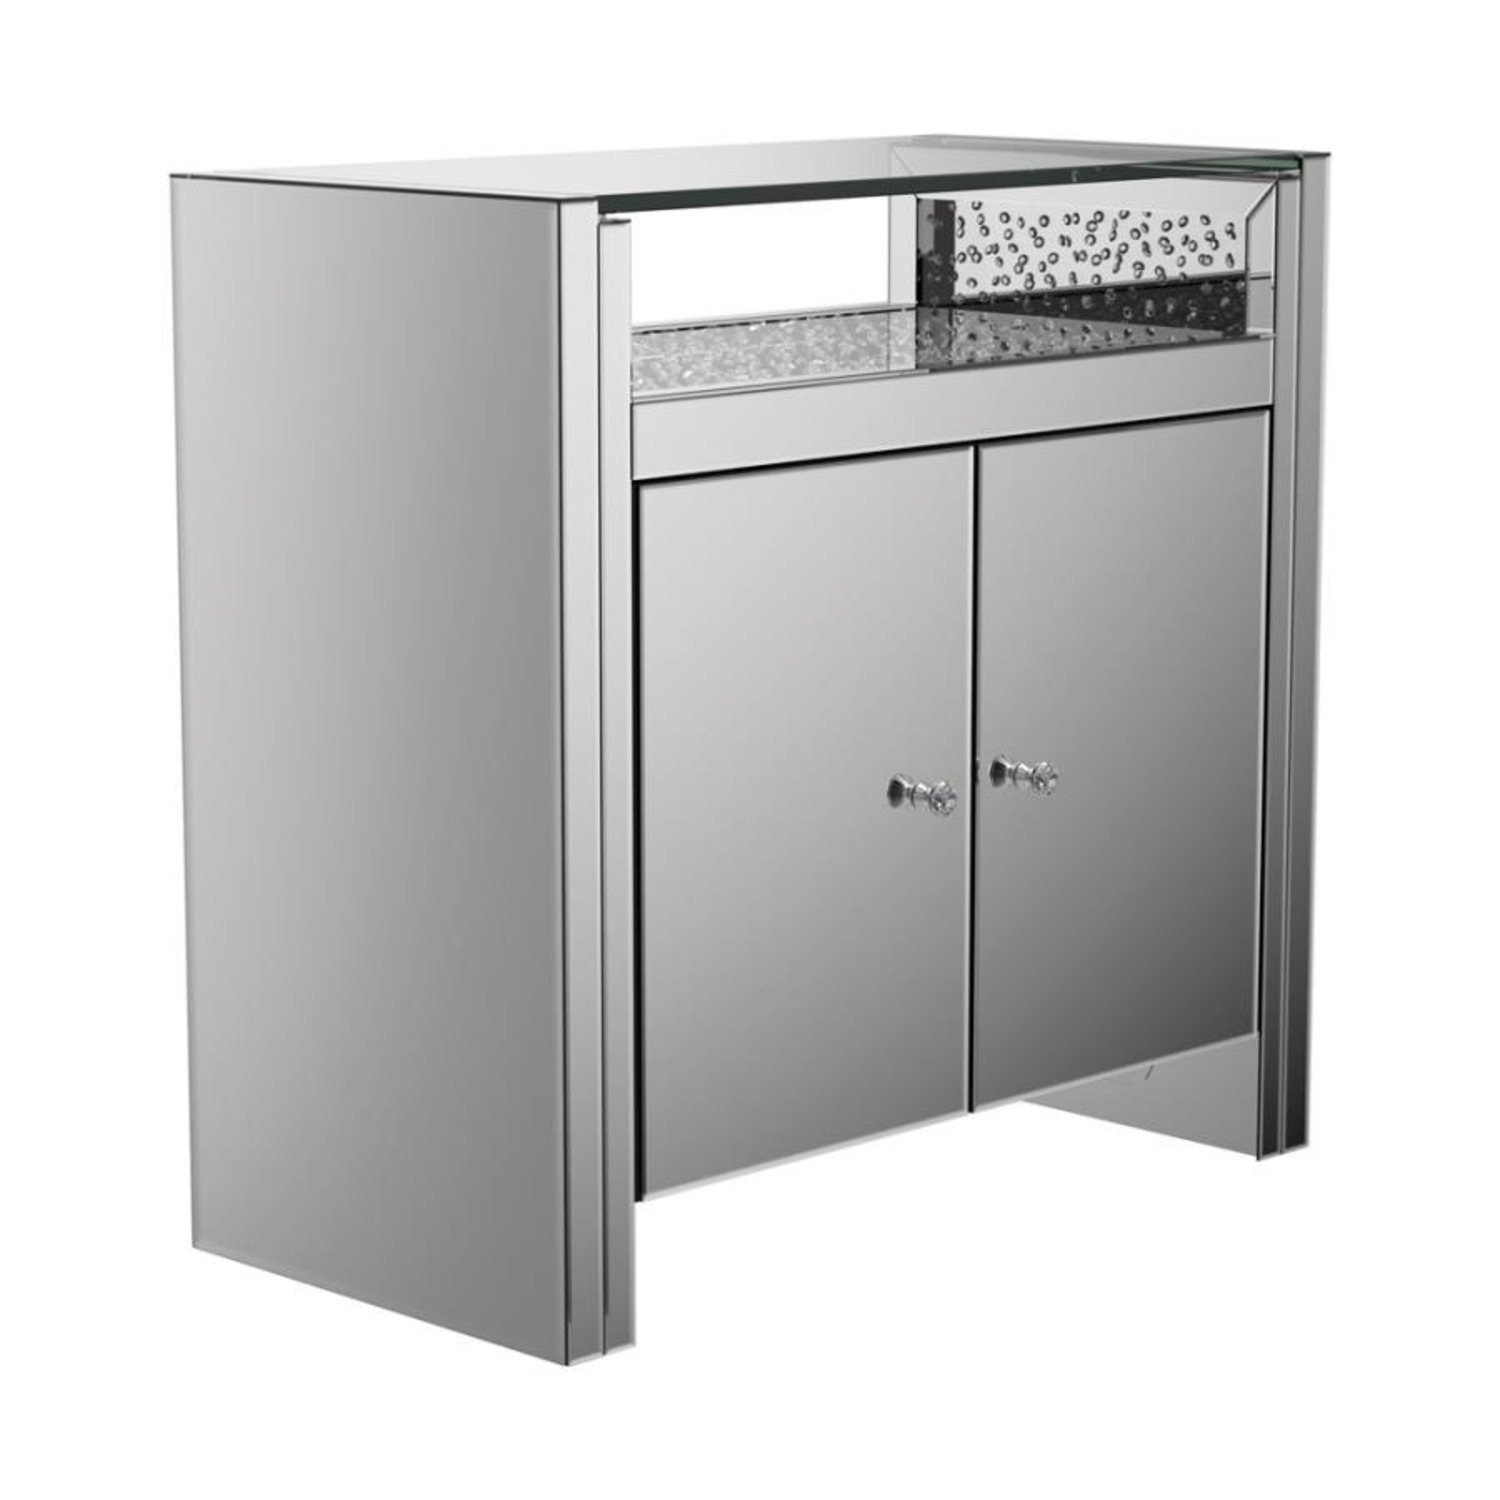 Cabinet In Silver & Clear Mirror Finish - image-0